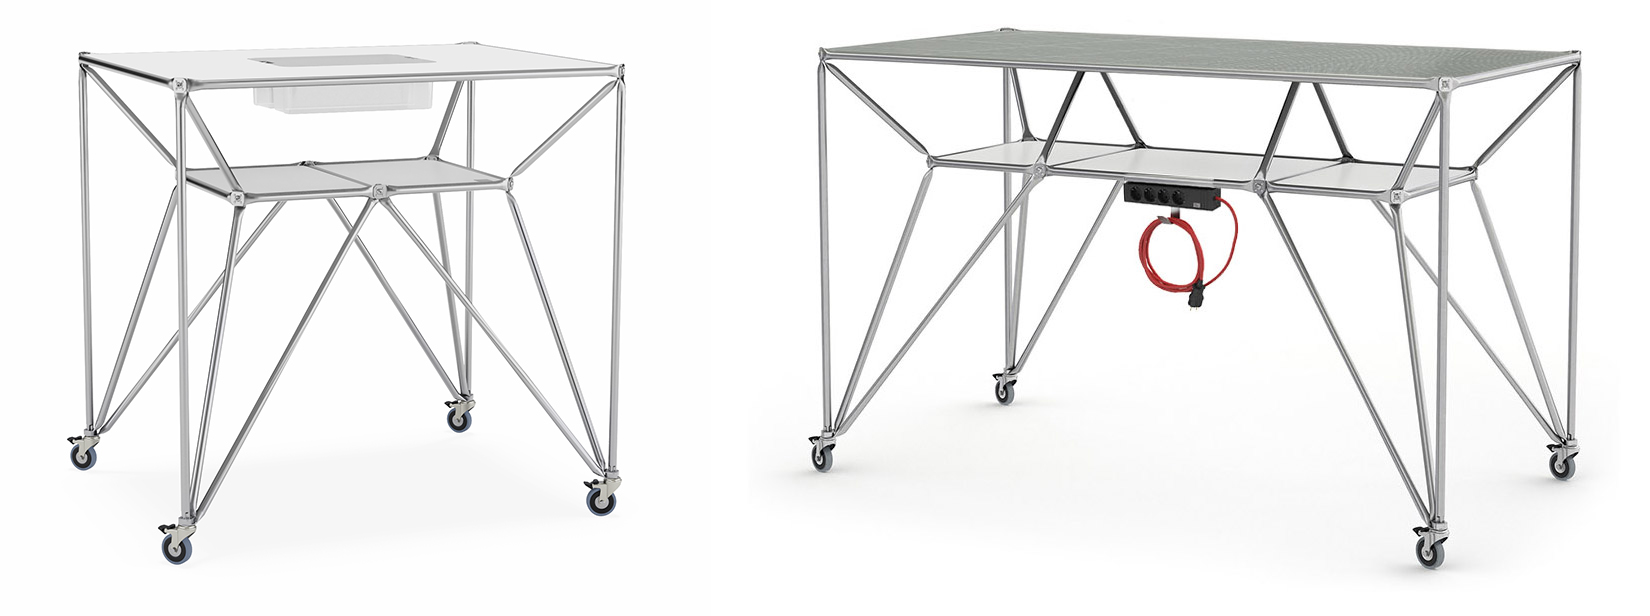 Design thinking line tables by system 180 for Design thinking tisch